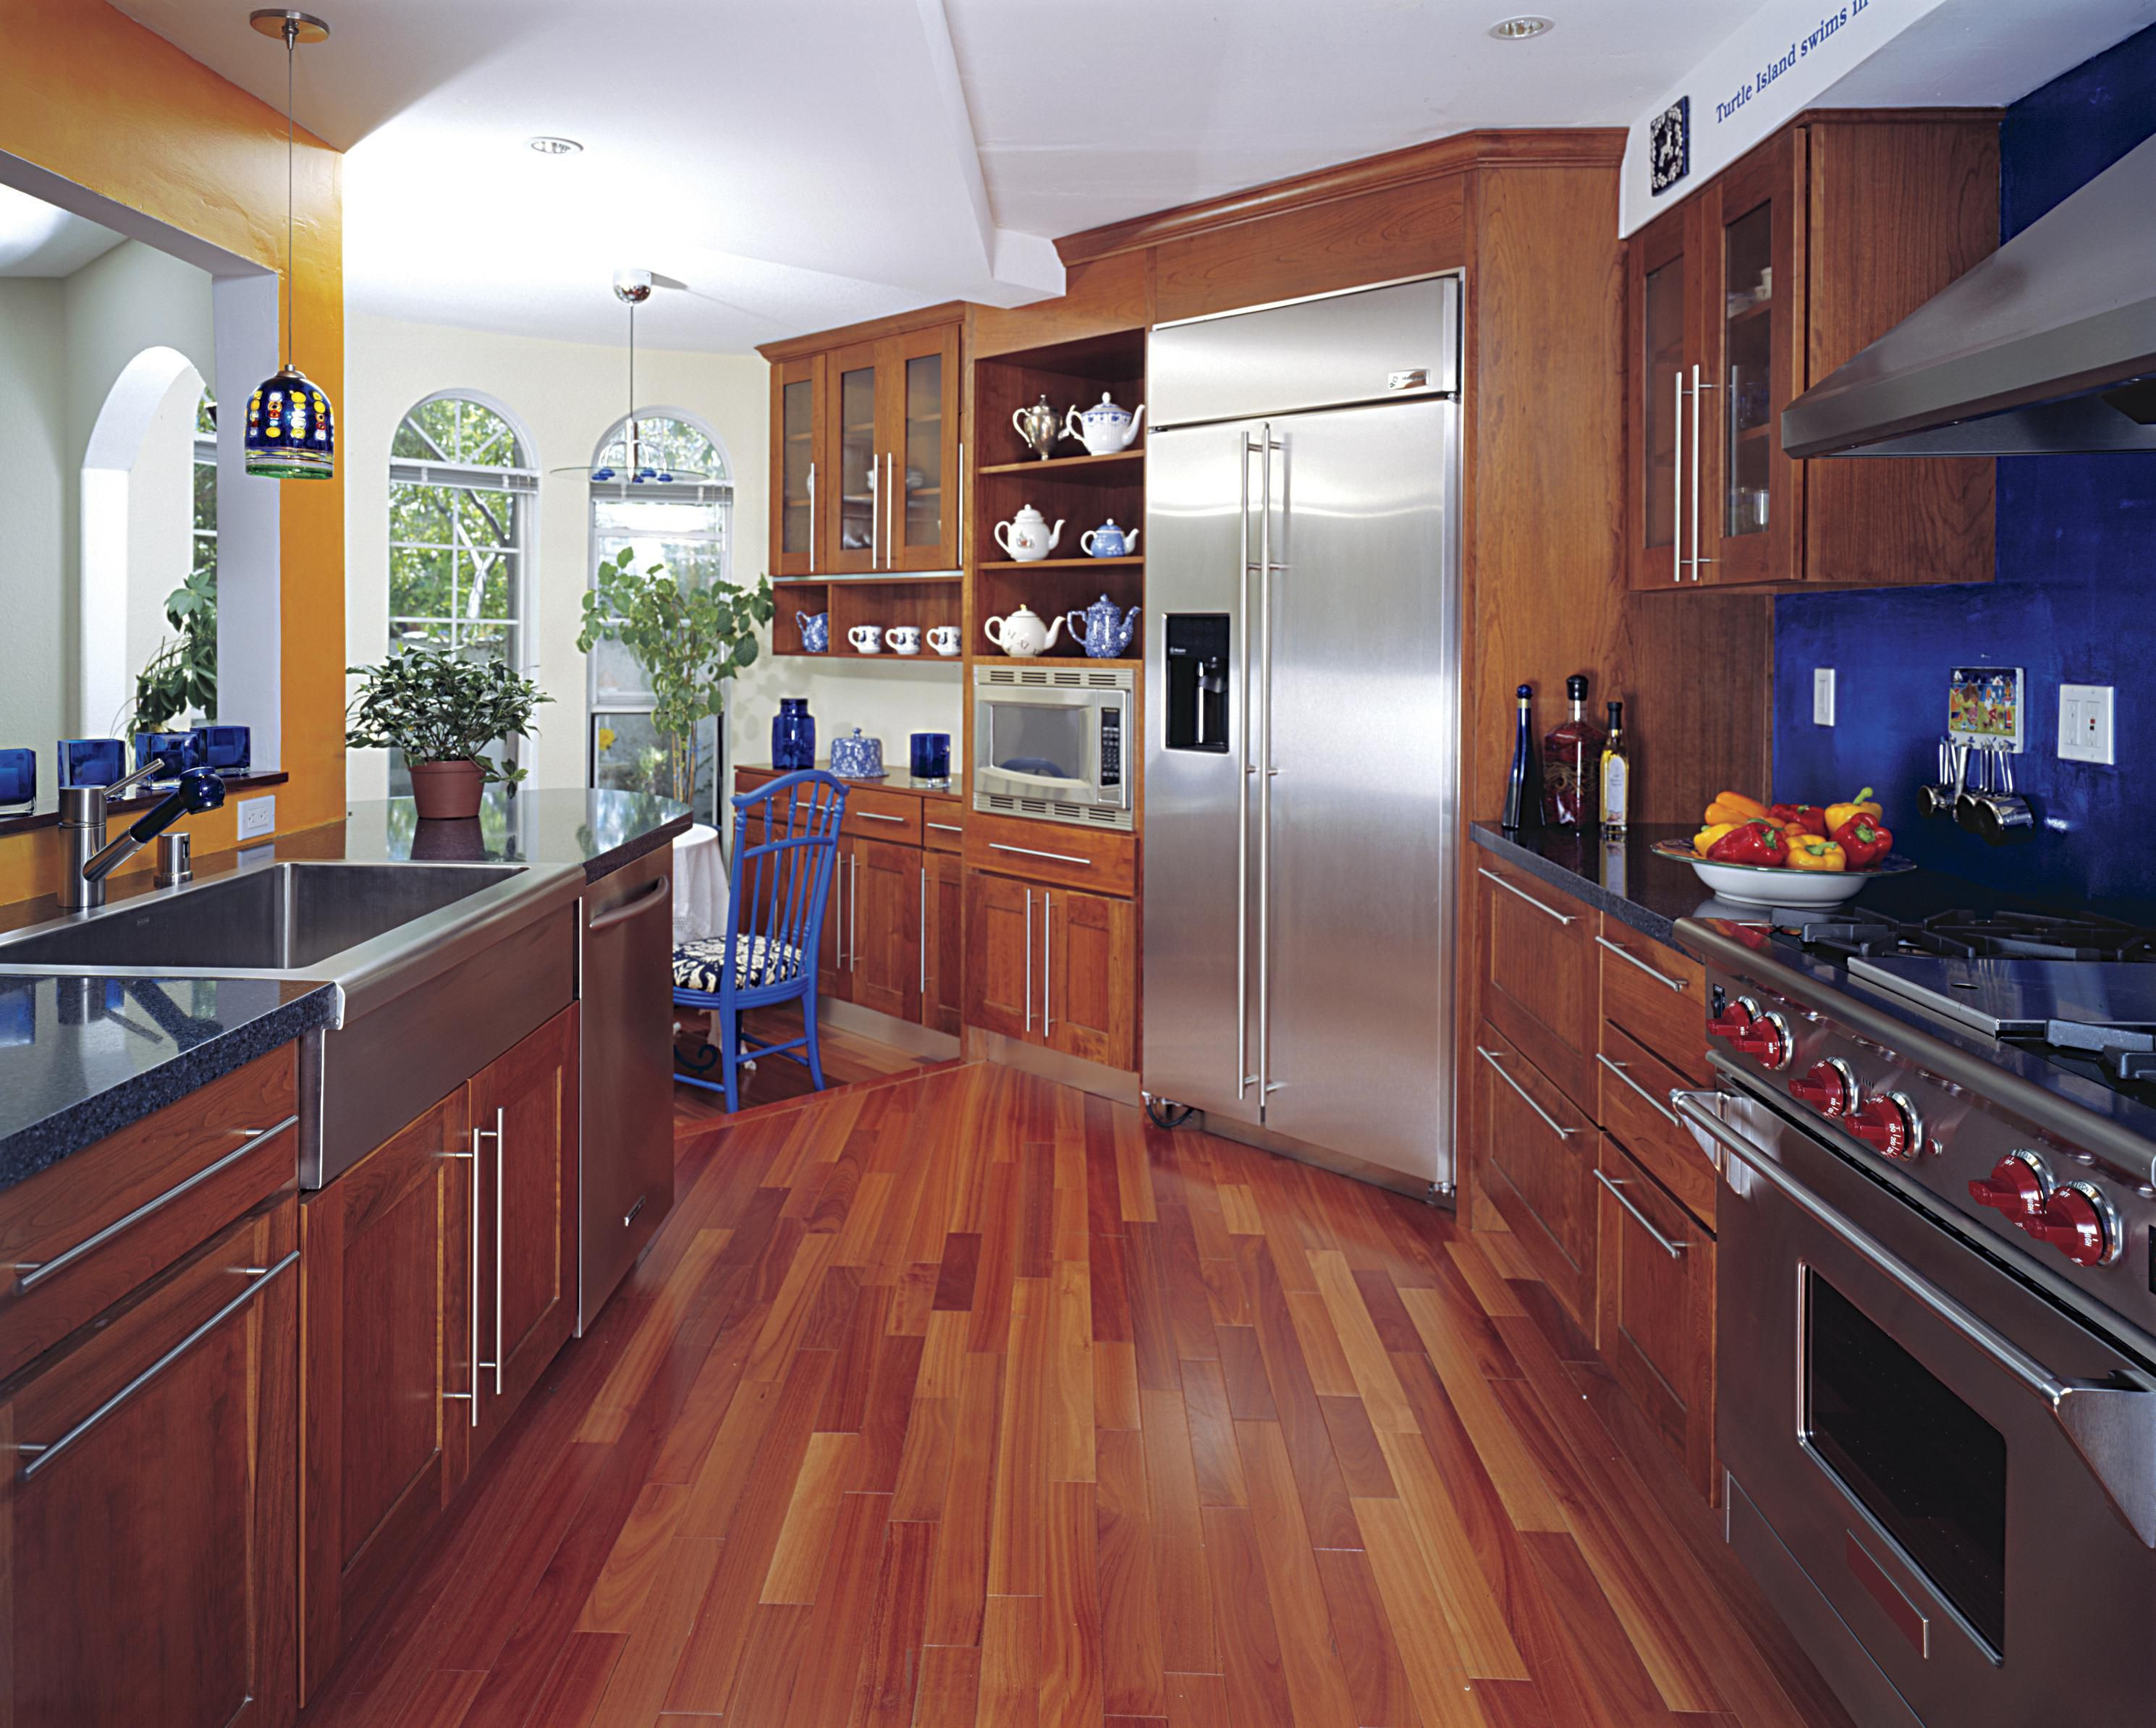 engineered hardwood vs solid wood flooring of hardwood floor in a kitchen is this allowed in 186828472 56a49f3a5f9b58b7d0d7e142